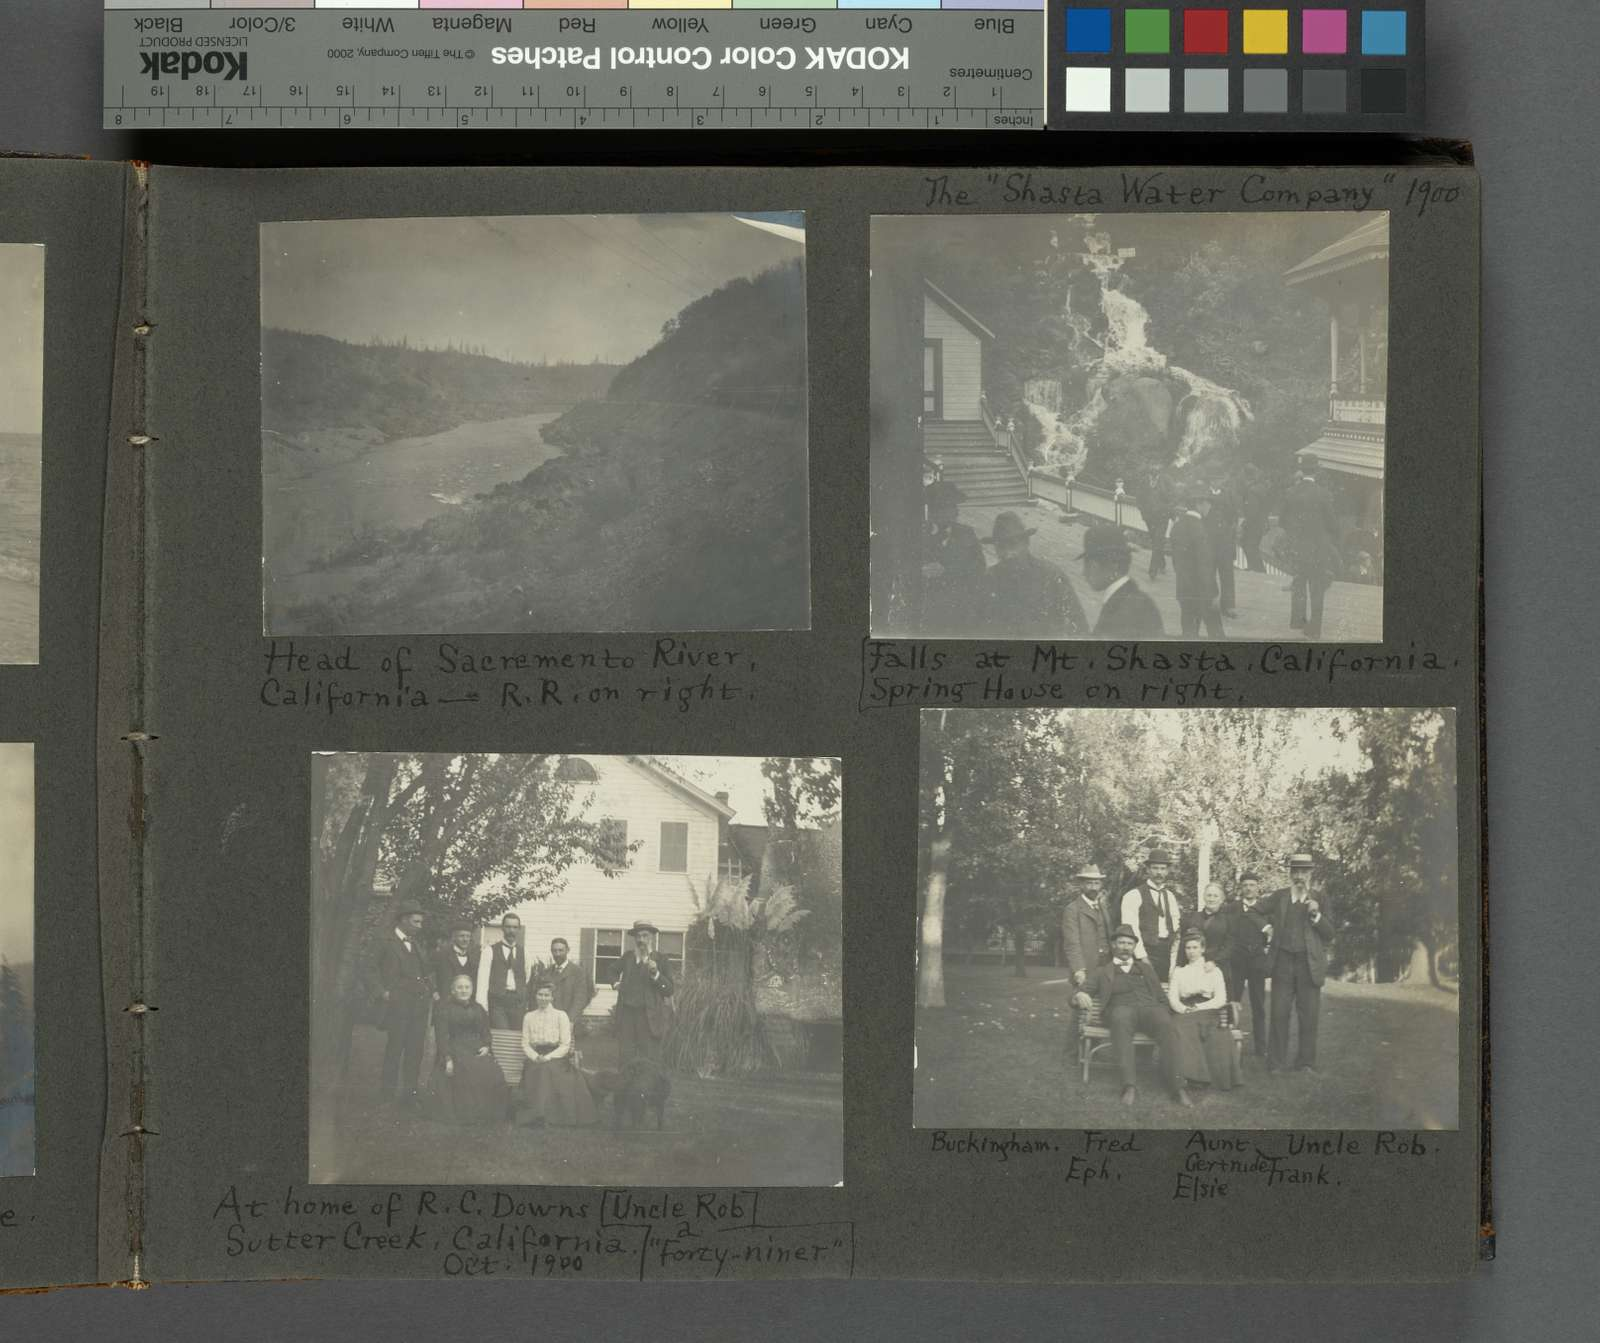 """Head of Sacremento River, California, R.R. on right; The """"Shasta Water Company"""" 1900. Falls at Mt. Shasta, California, spring house on right; At home of R.C. Downs, Sutter Creek, California, Oct. 1900, Uncle Rob a """"forty-niner""""; Buckingham, Fred, Aunt Gertrude, Uncle Rob, Eph., Elsie, Frank."""